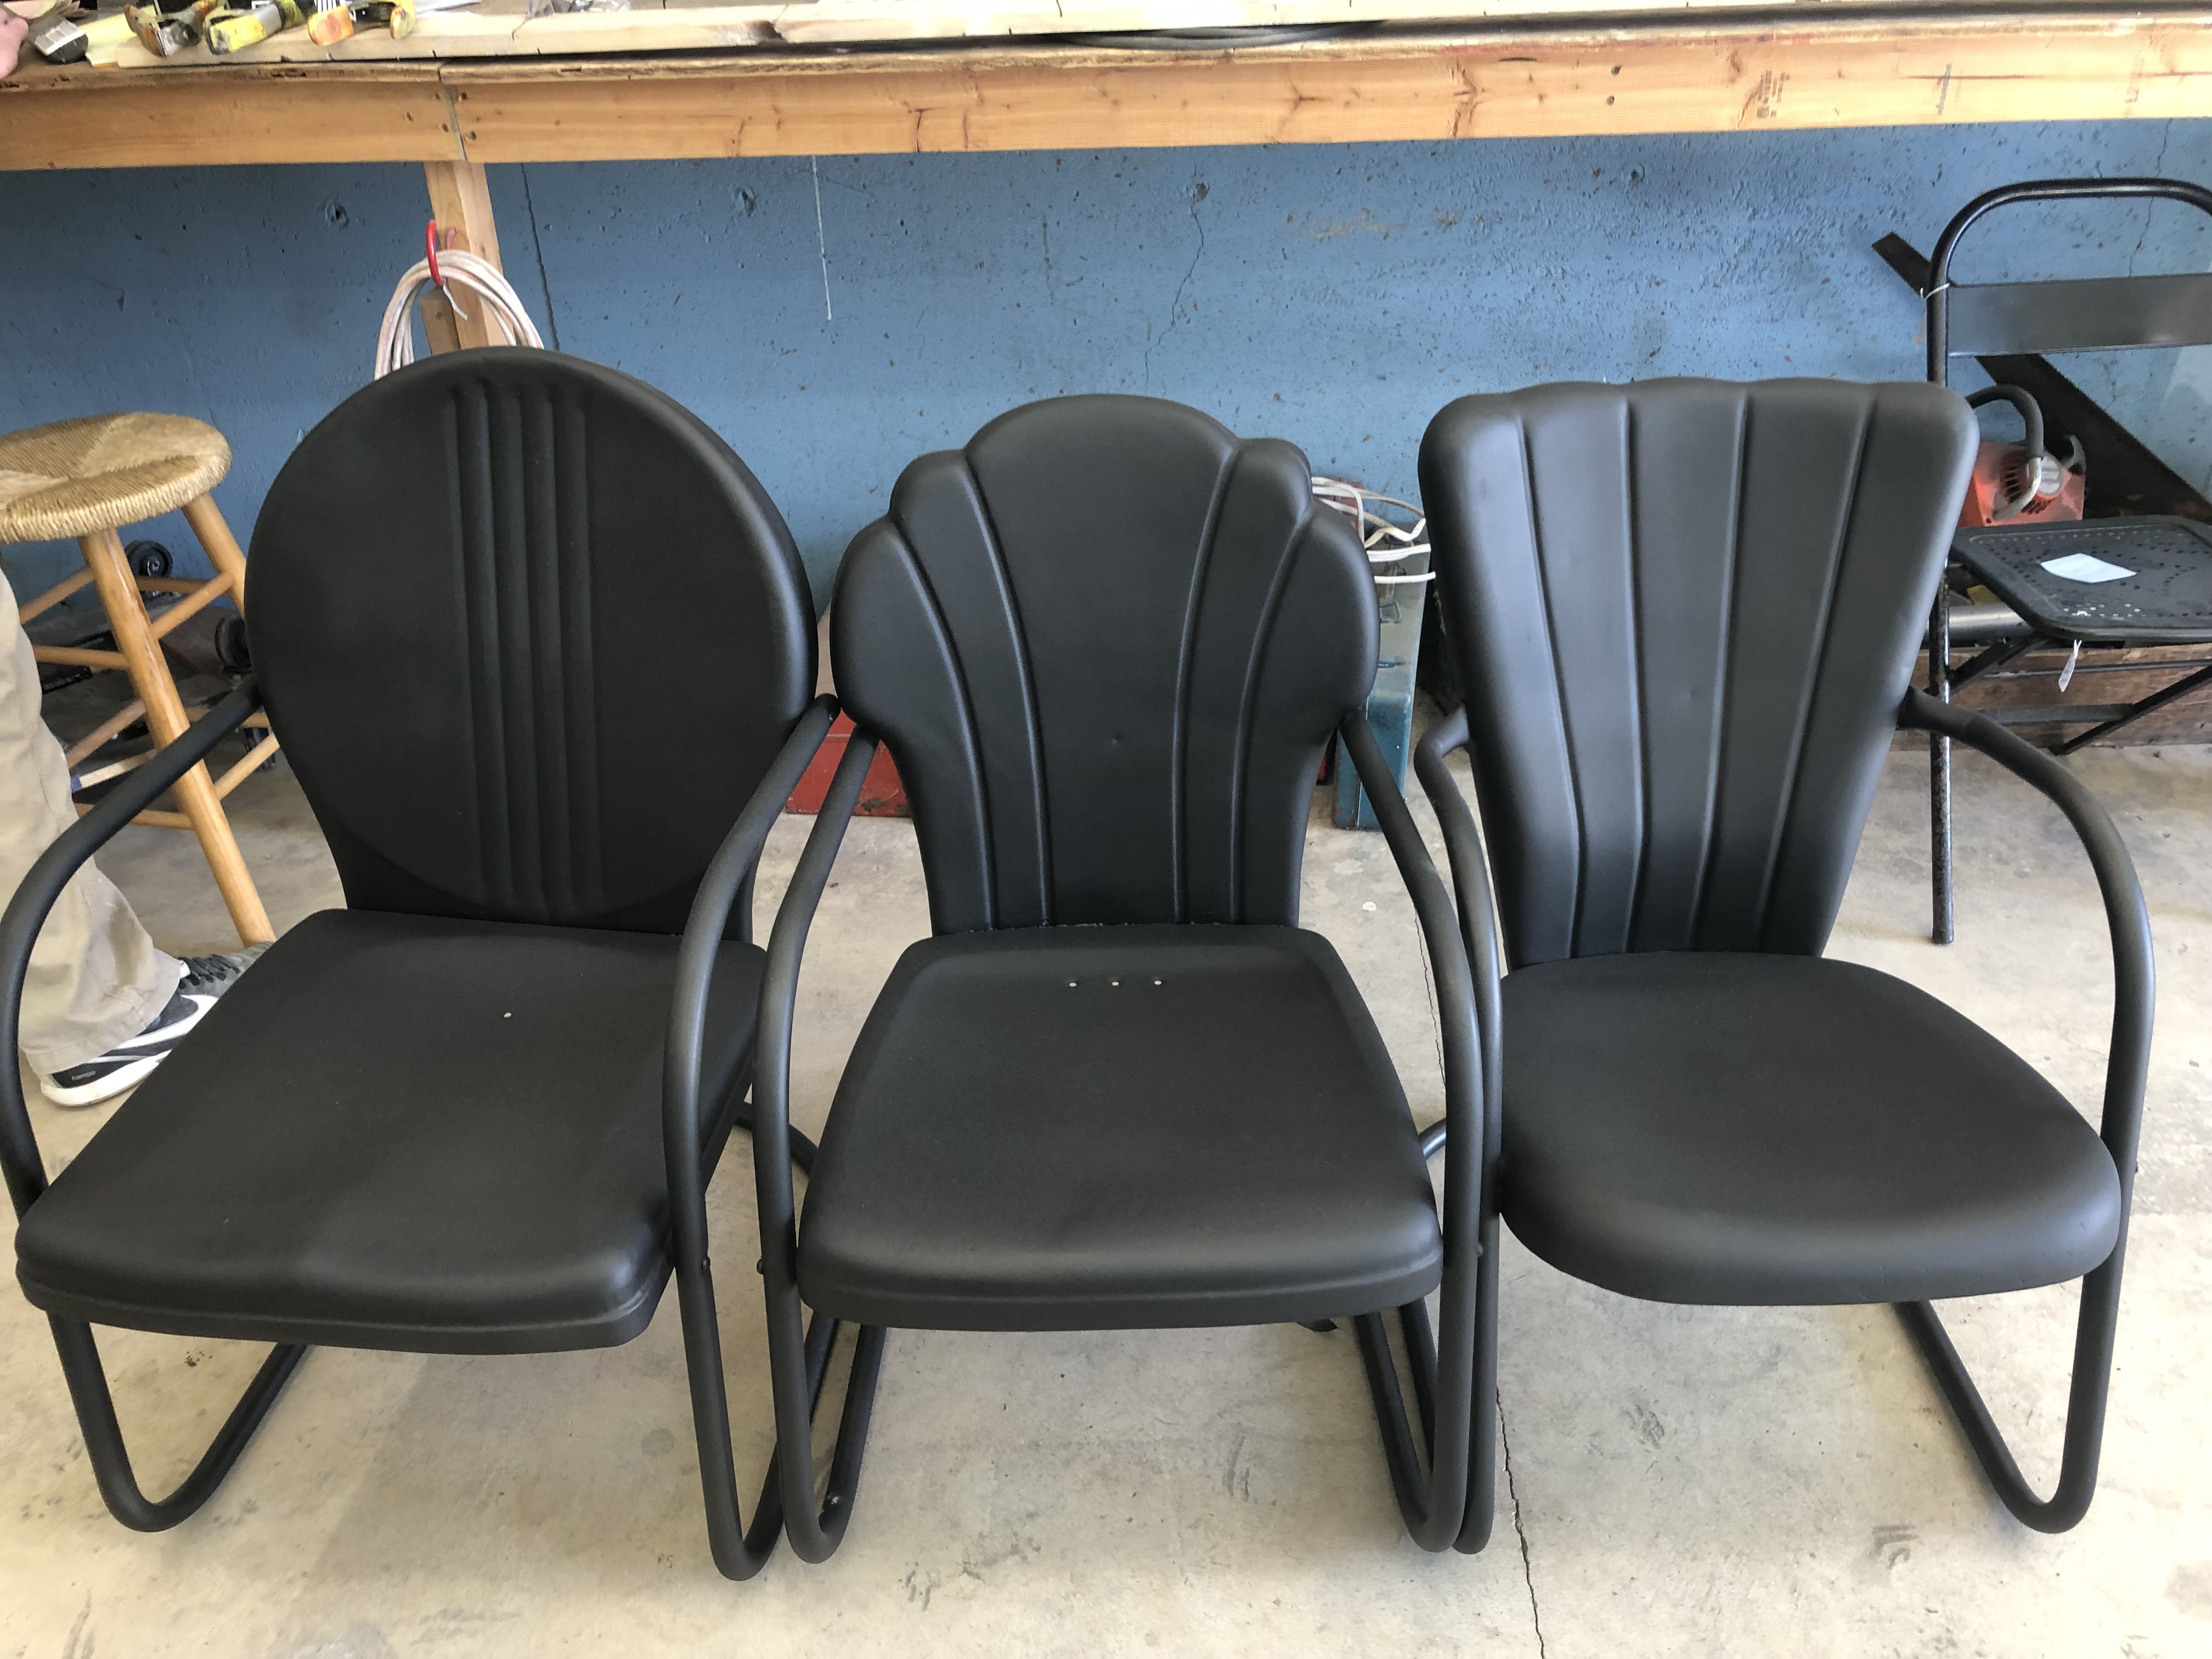 chairsafter